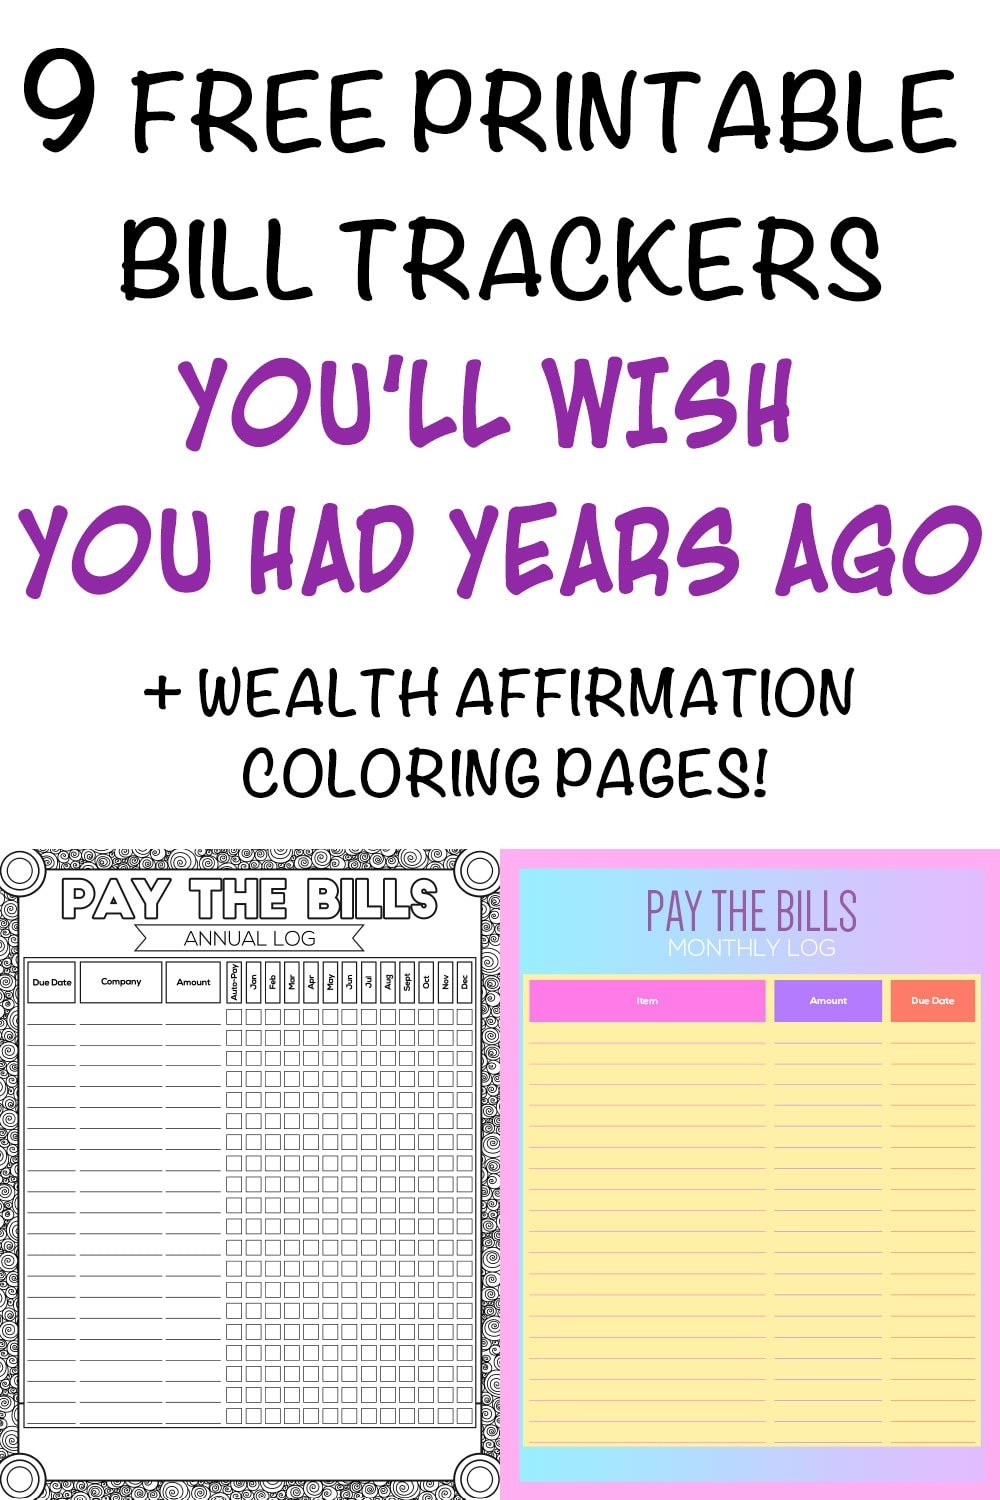 9 Printable Bill Payment Checklists And Bill Trackers - The Artisan Life - Free Printable Bill Payment Checklist